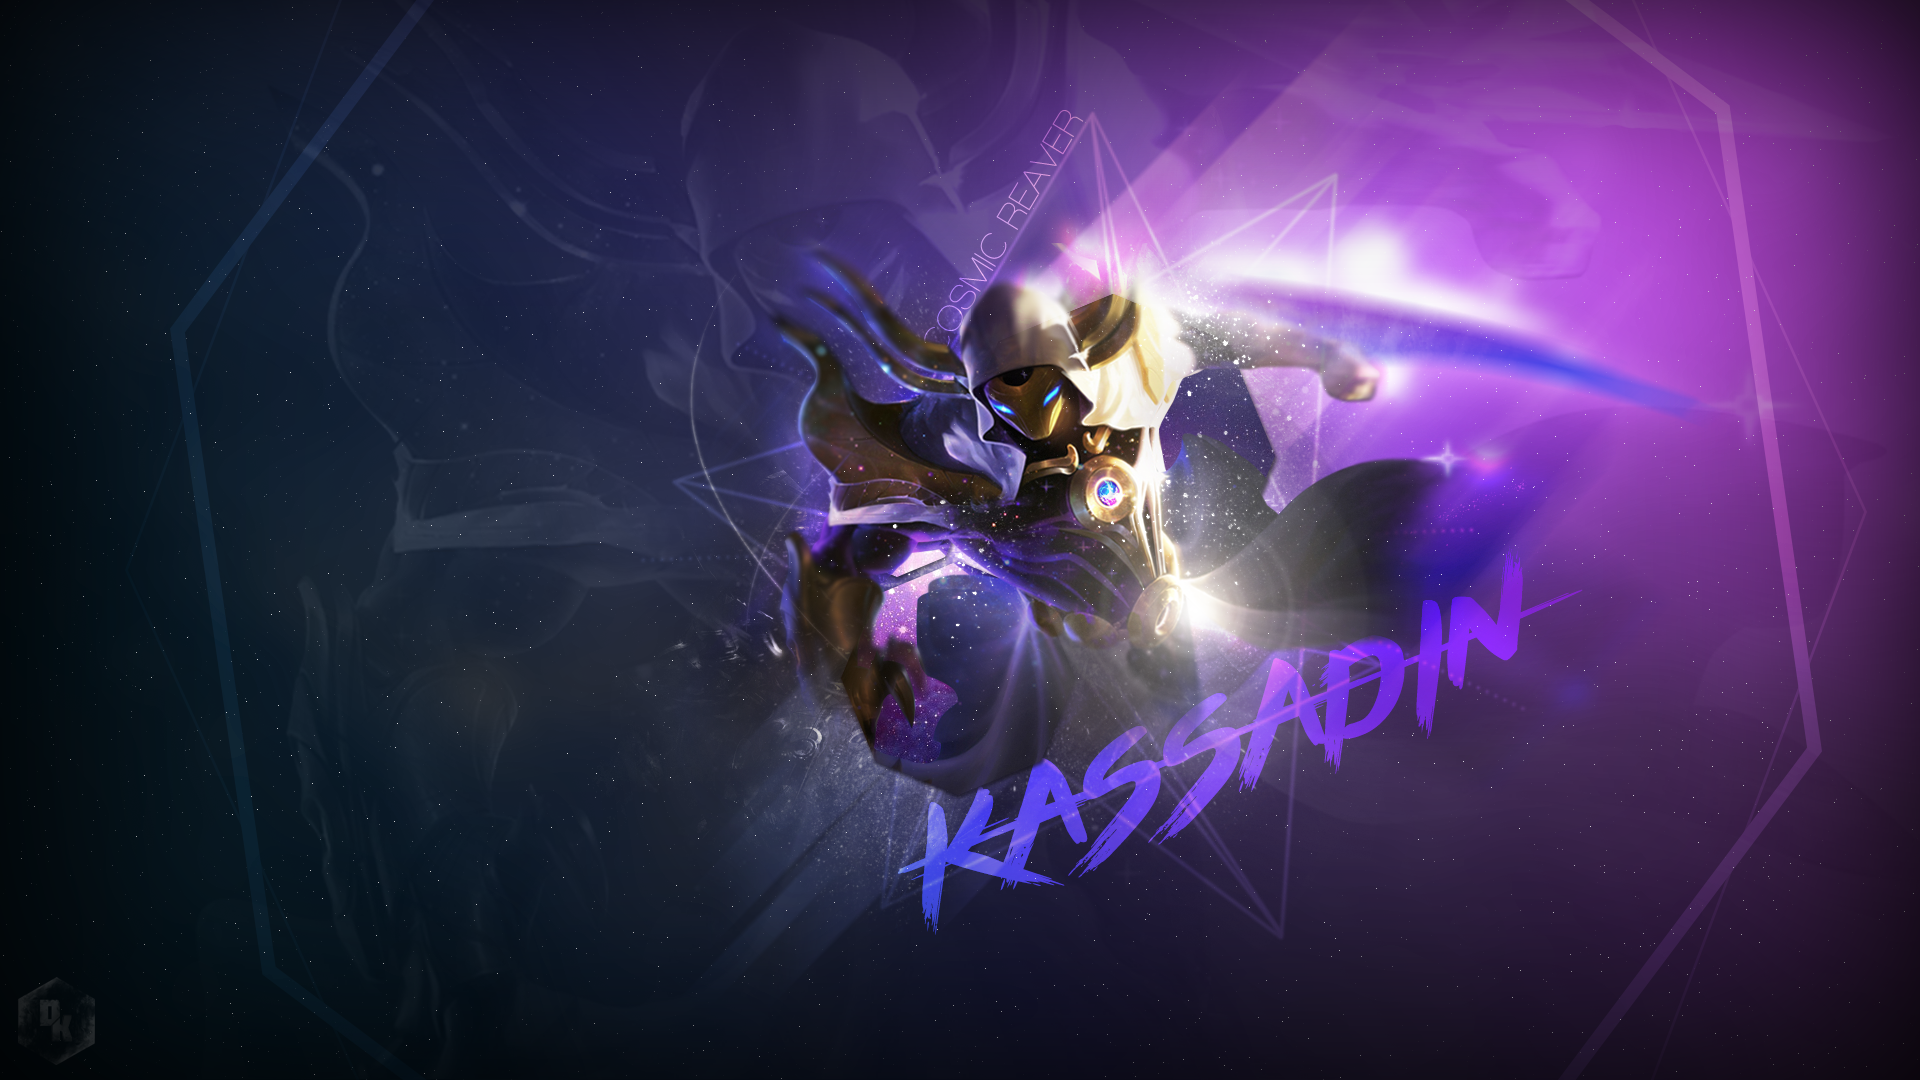 Cosmic Reaver Kassadin wallpaper